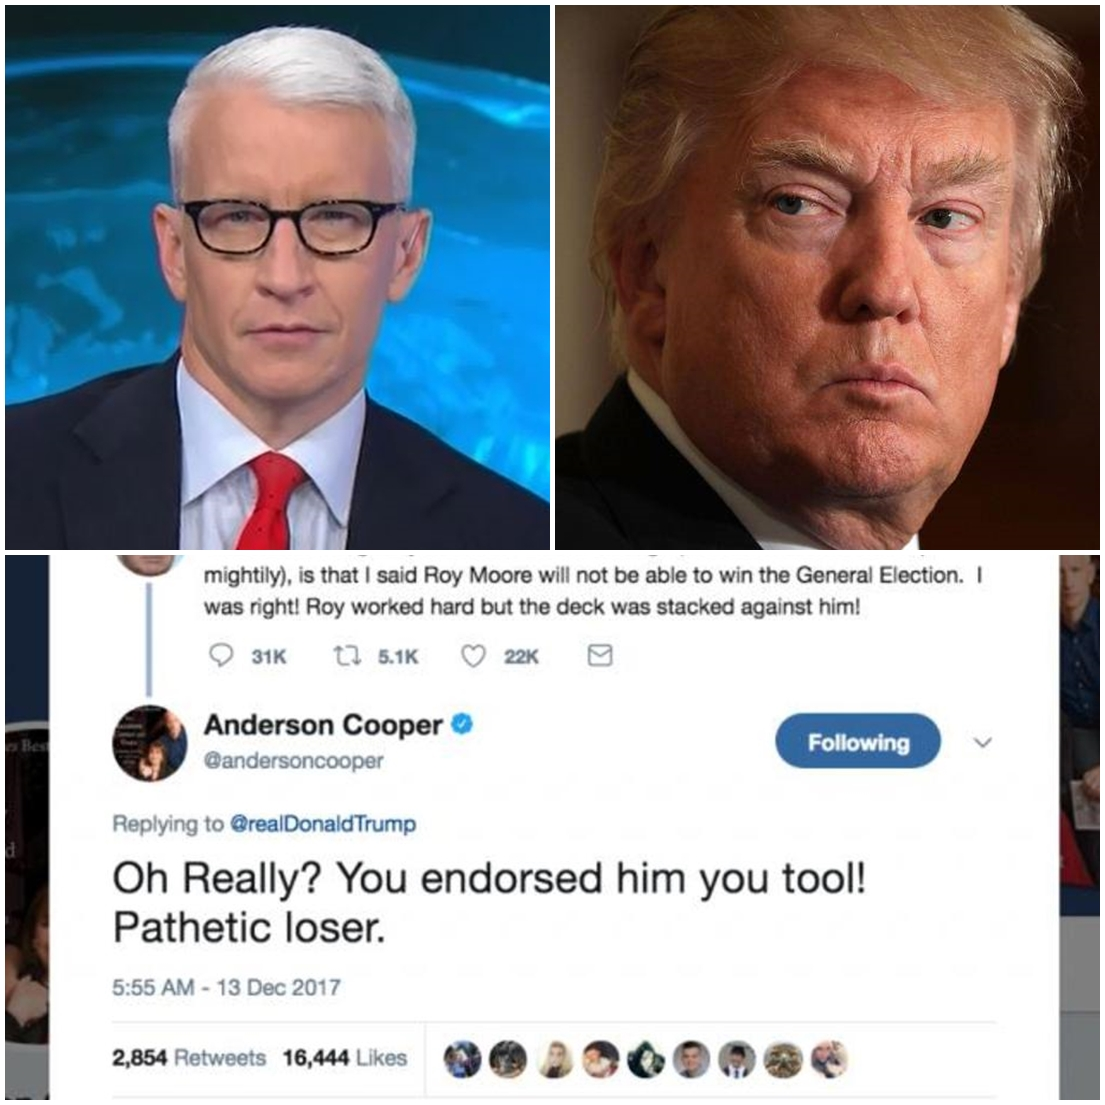 Anderson Cooper says Twitter account hacked after tweet calling Trump a 'pathetic loser'